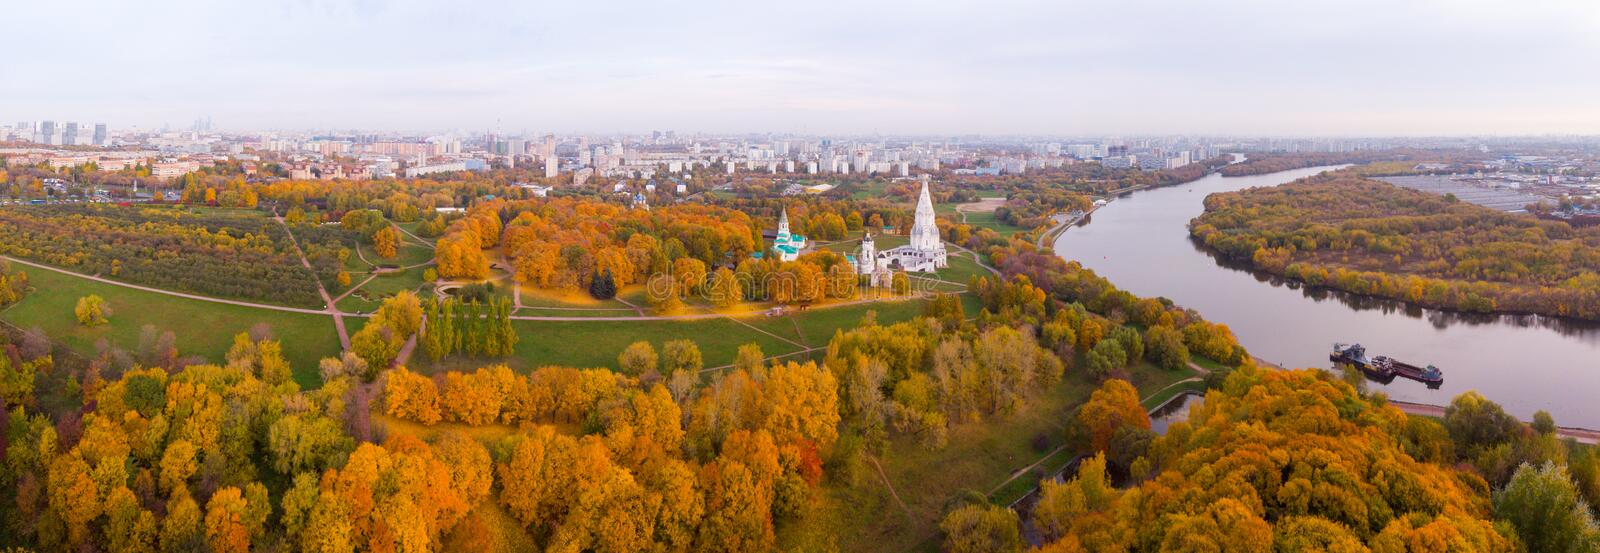 Church of the Ascension in Kolomenskoye park in autumn season aerial view, Moscow, Russia royalty free stock image